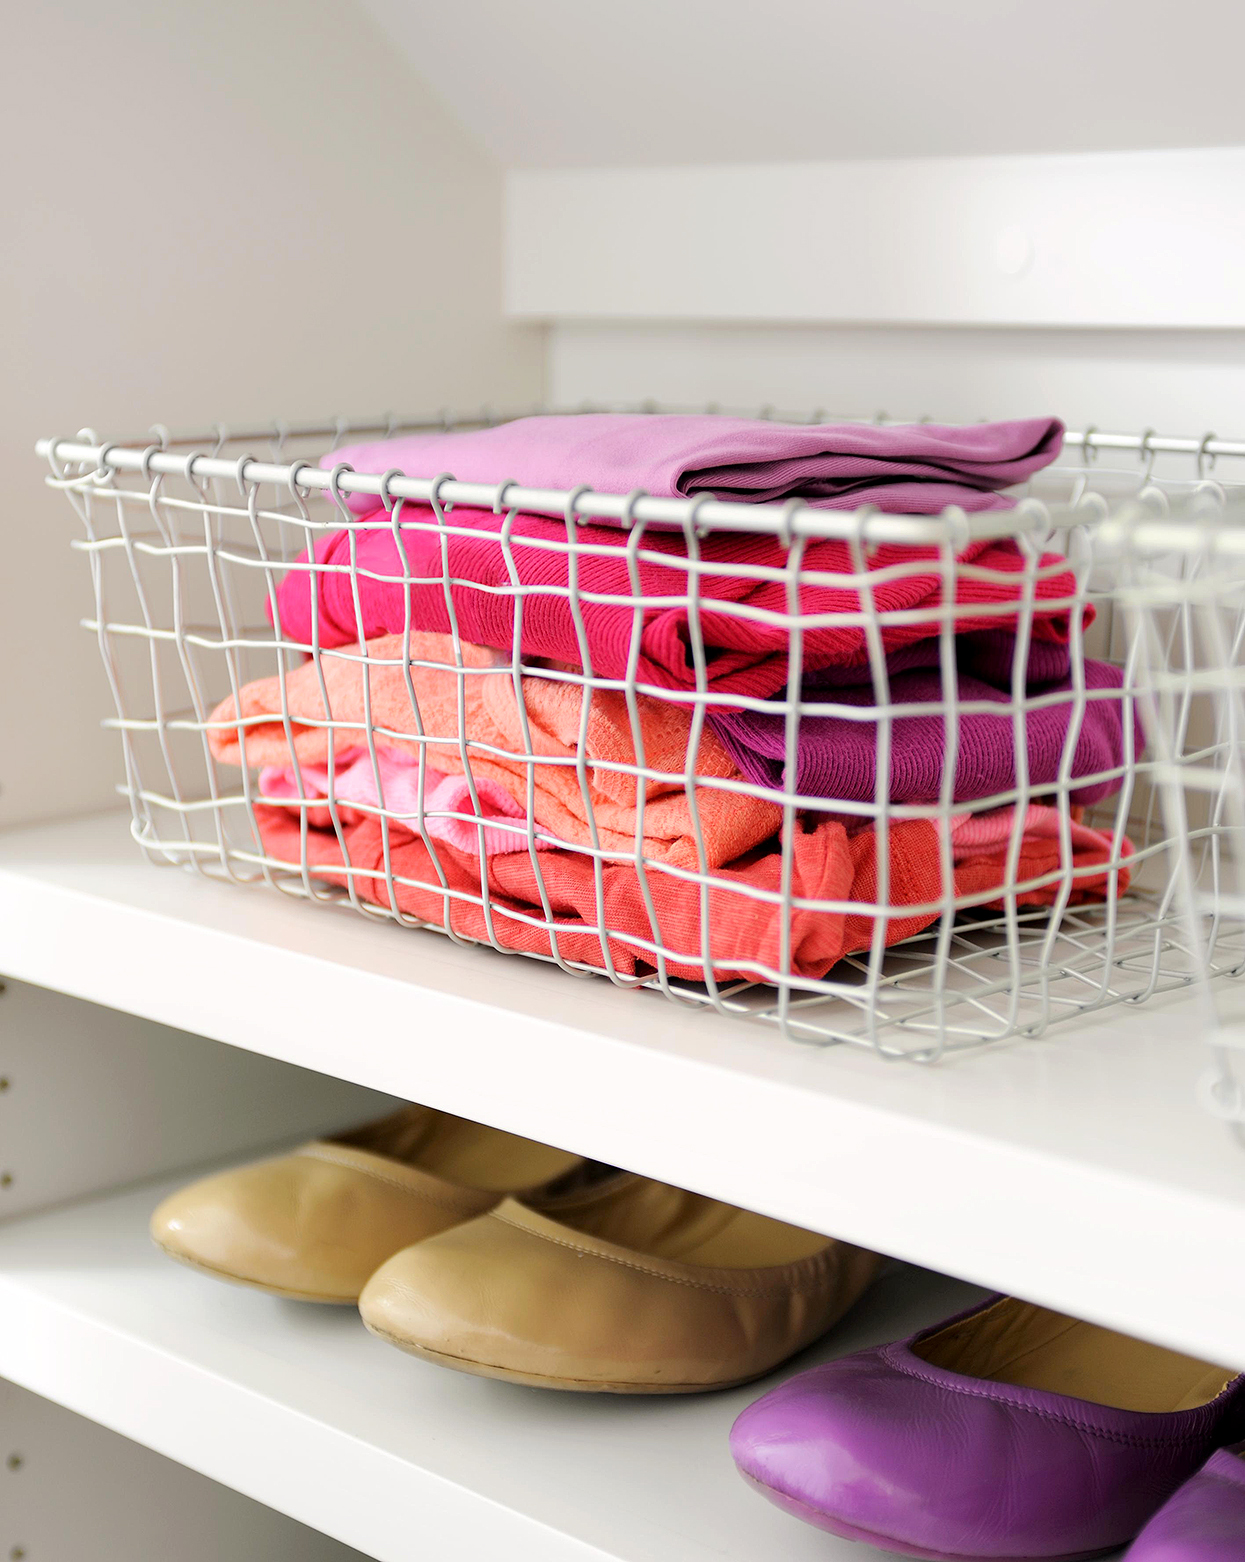 detail of clothes in wire basket sitting on closet shelf